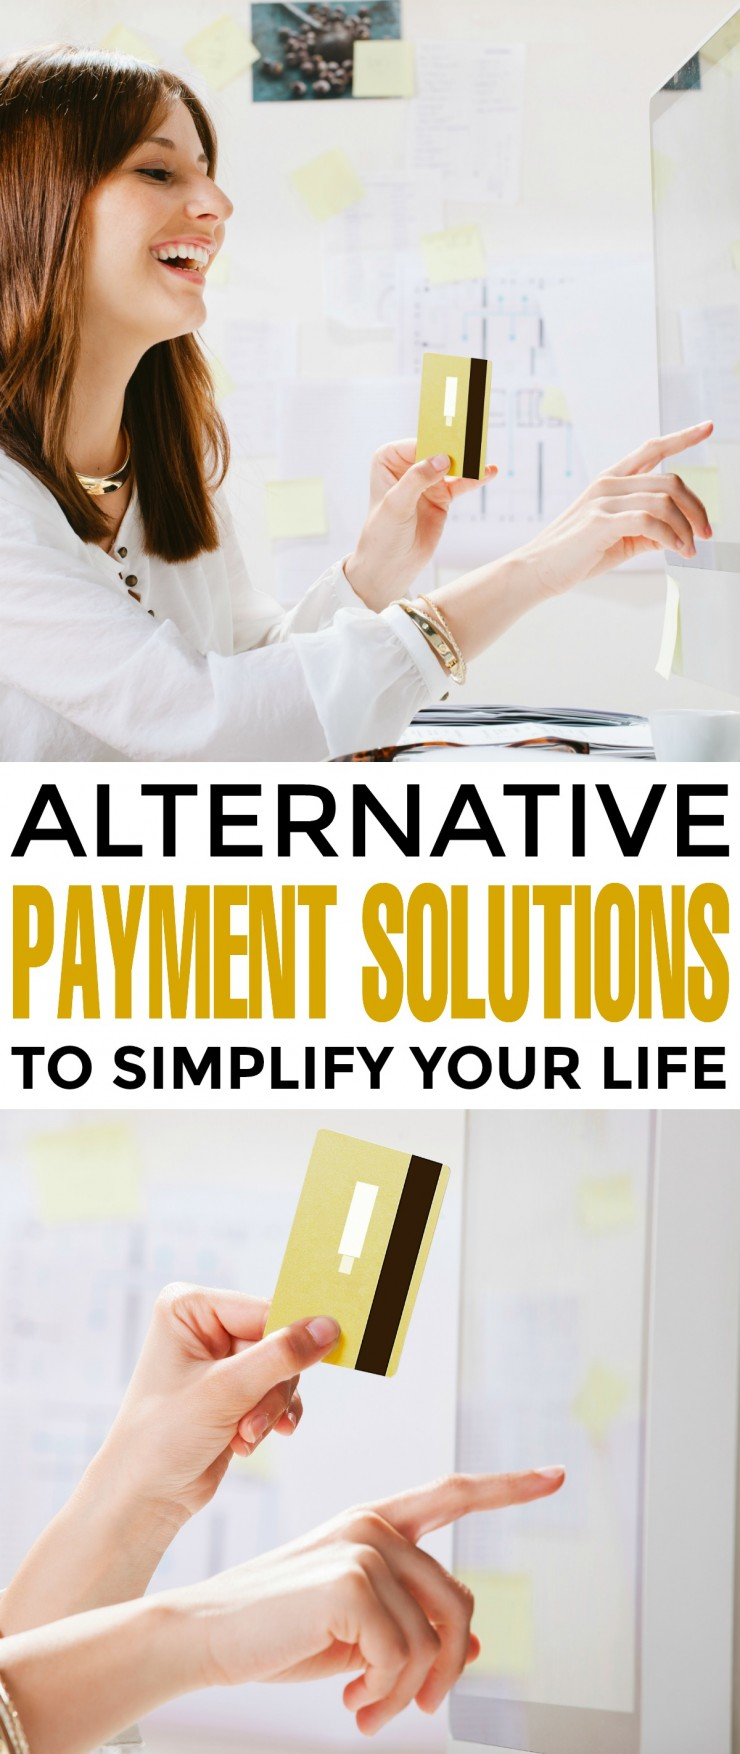 Alternative Payment Solutions to Simplify Your Life